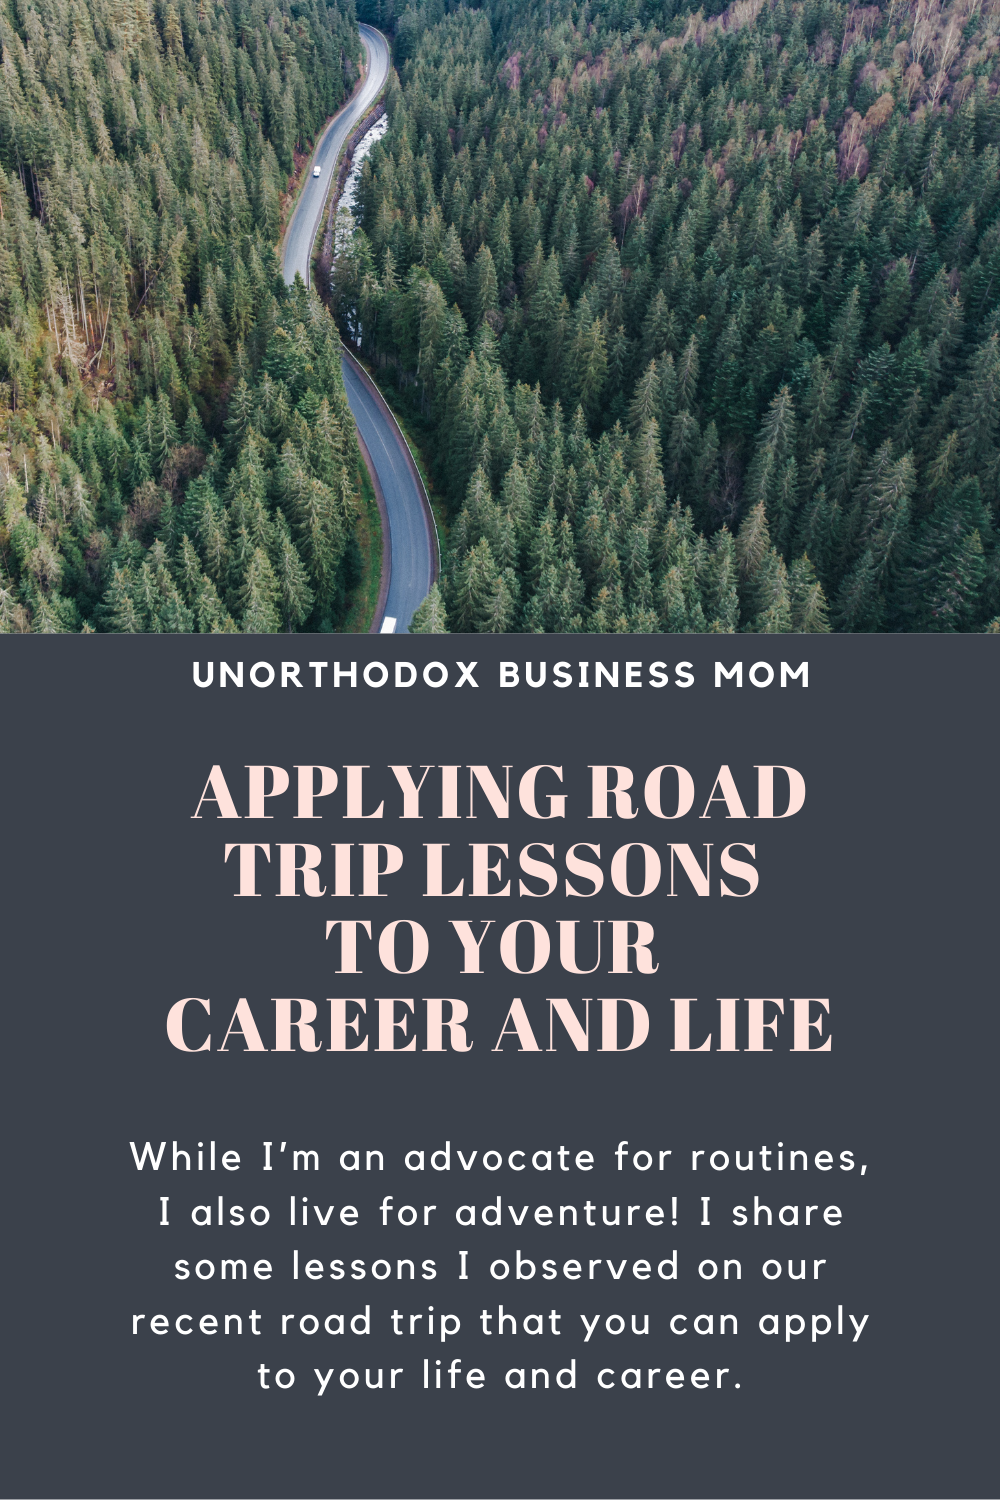 While I'm an advocate for routines, I also live for adventure! I share some lessons I observed on our recent road trip that you can apply to your life and career.